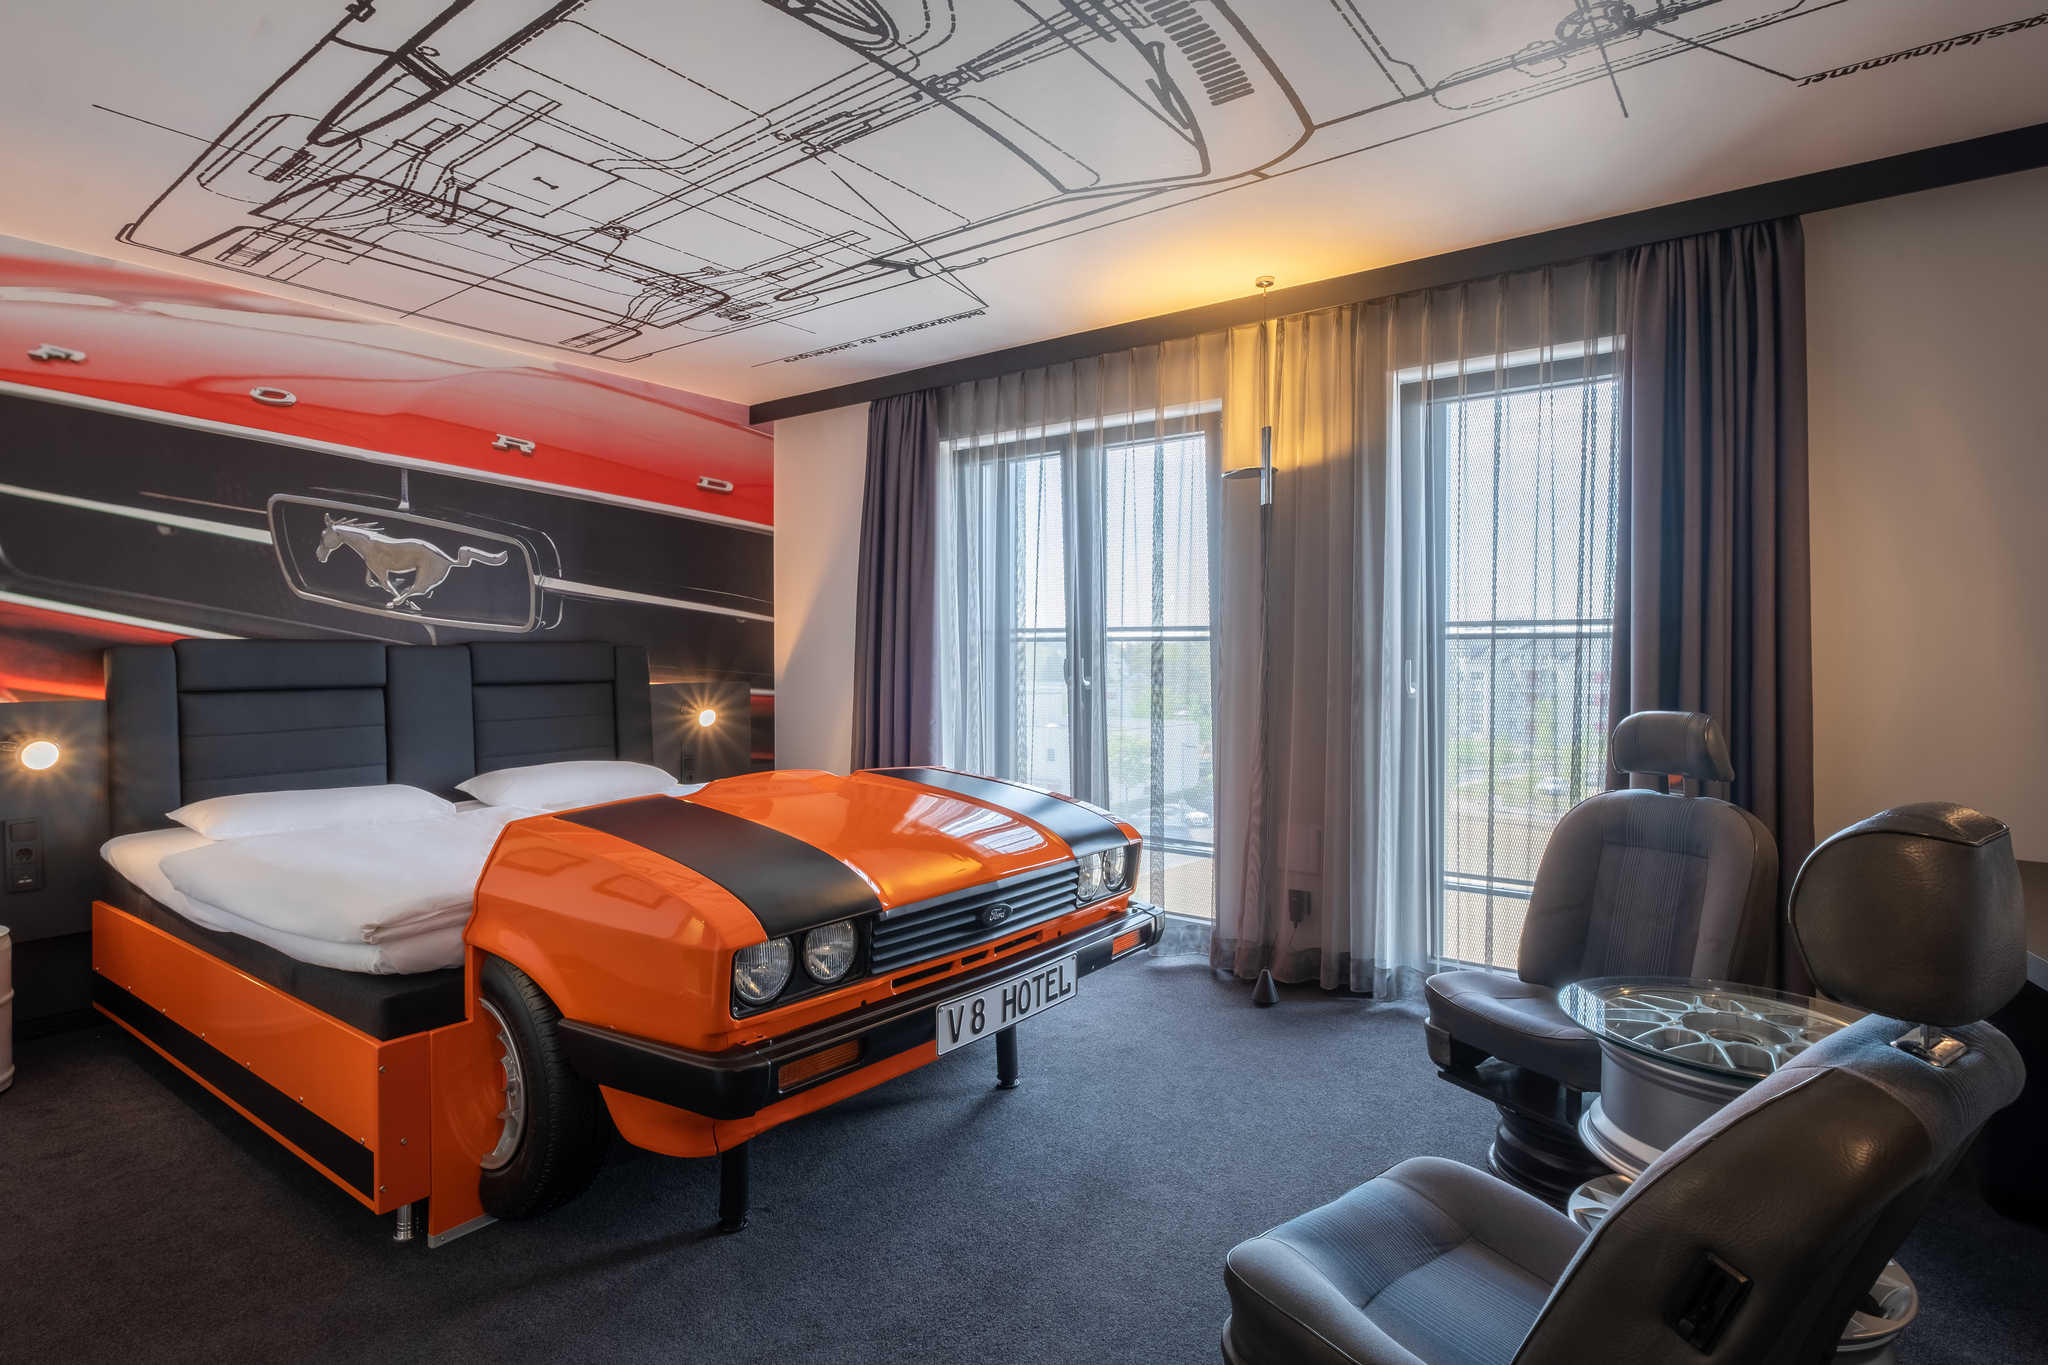 Bilder V8 Hotel Koln @Motorworld, Ascend Hotel Collection